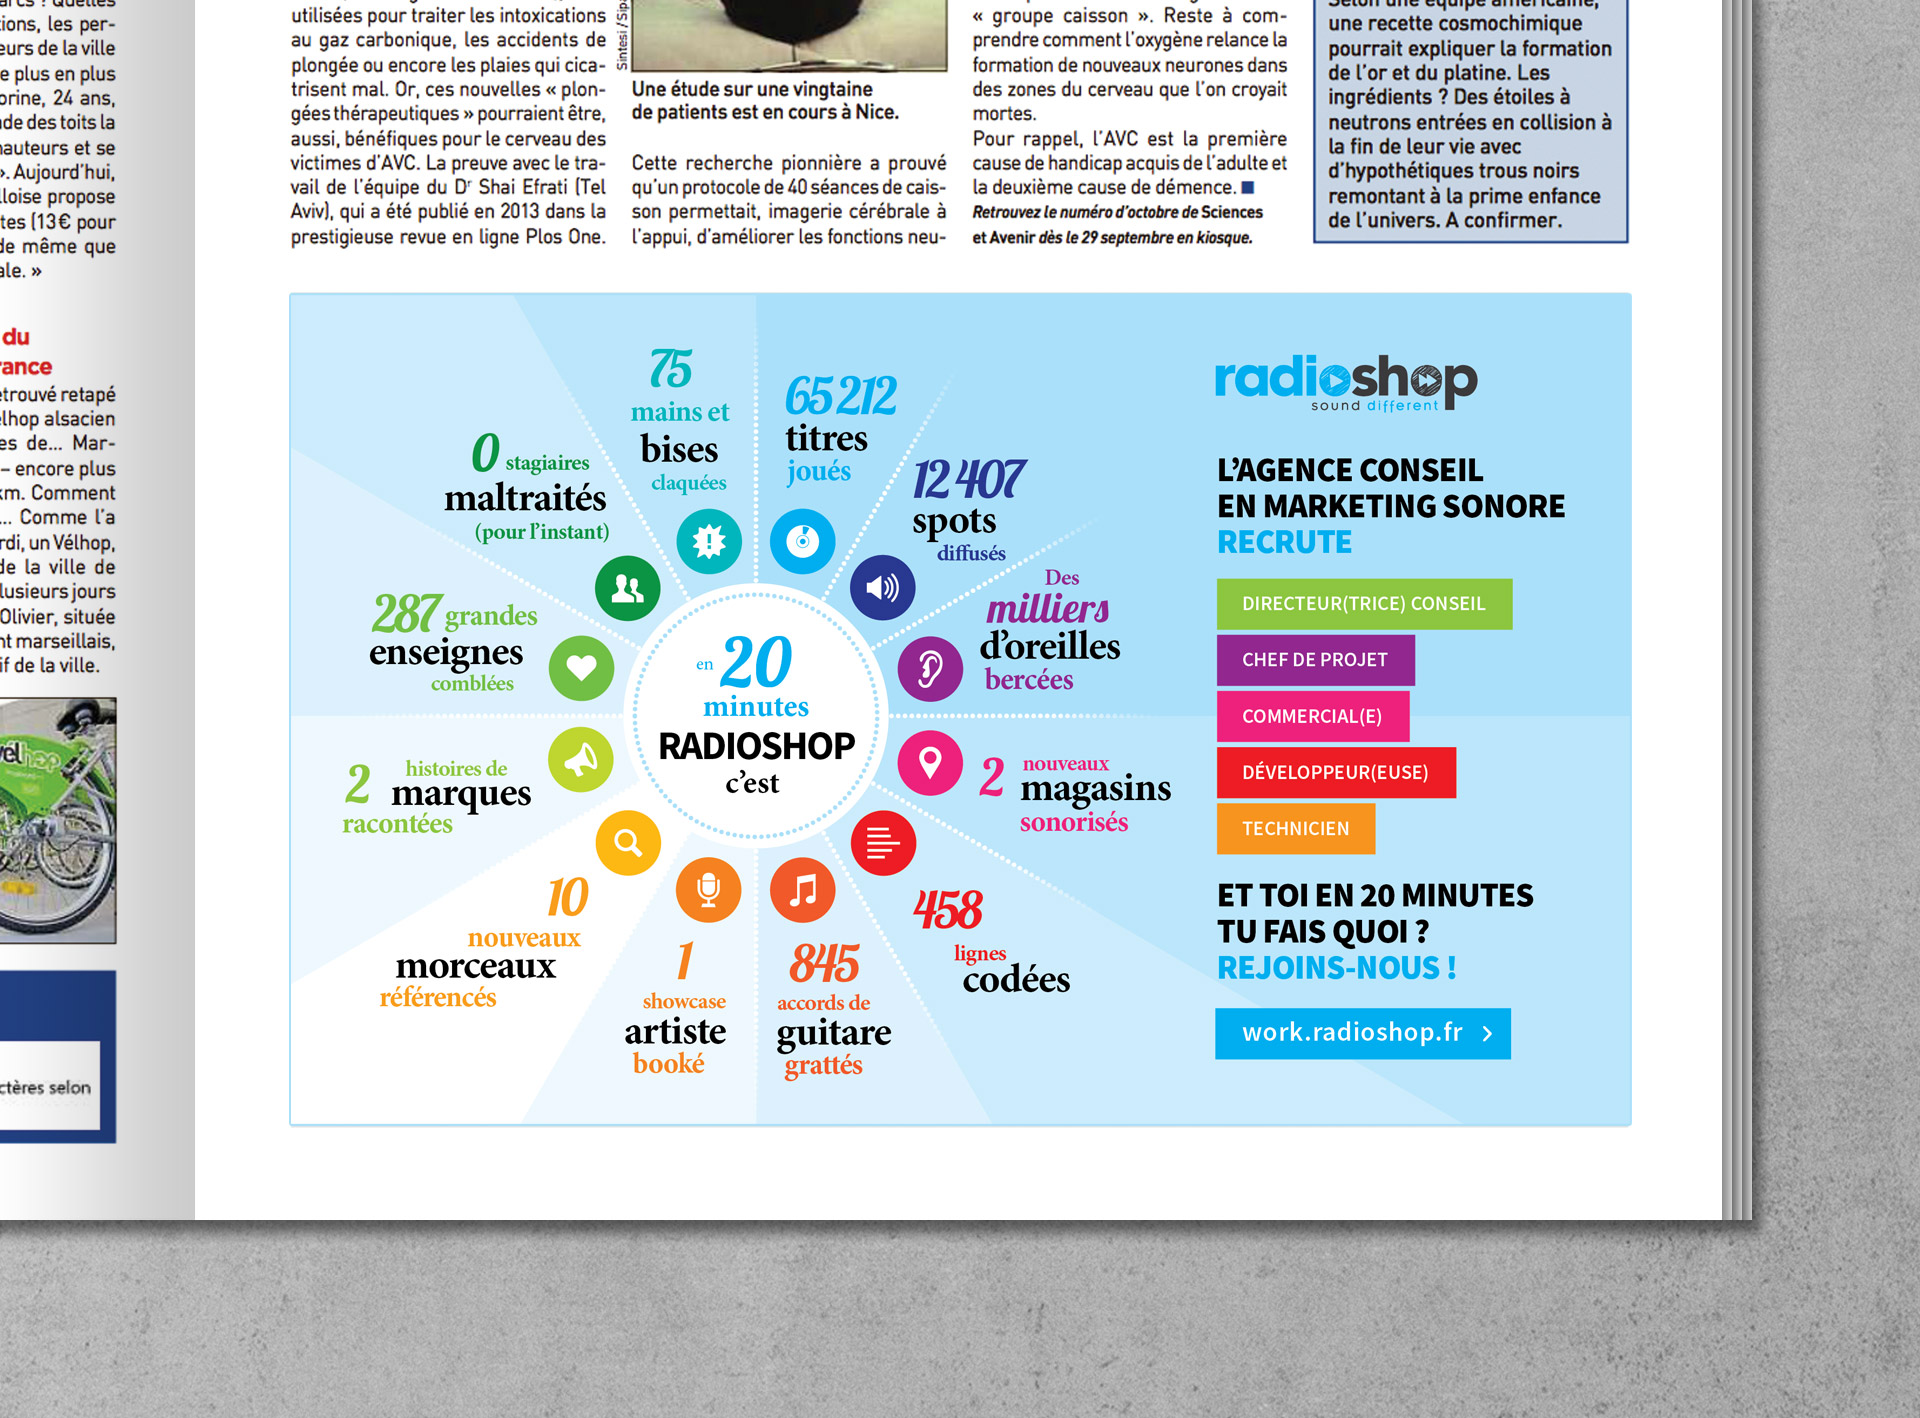 Creation pub avec infographies 20 minutes